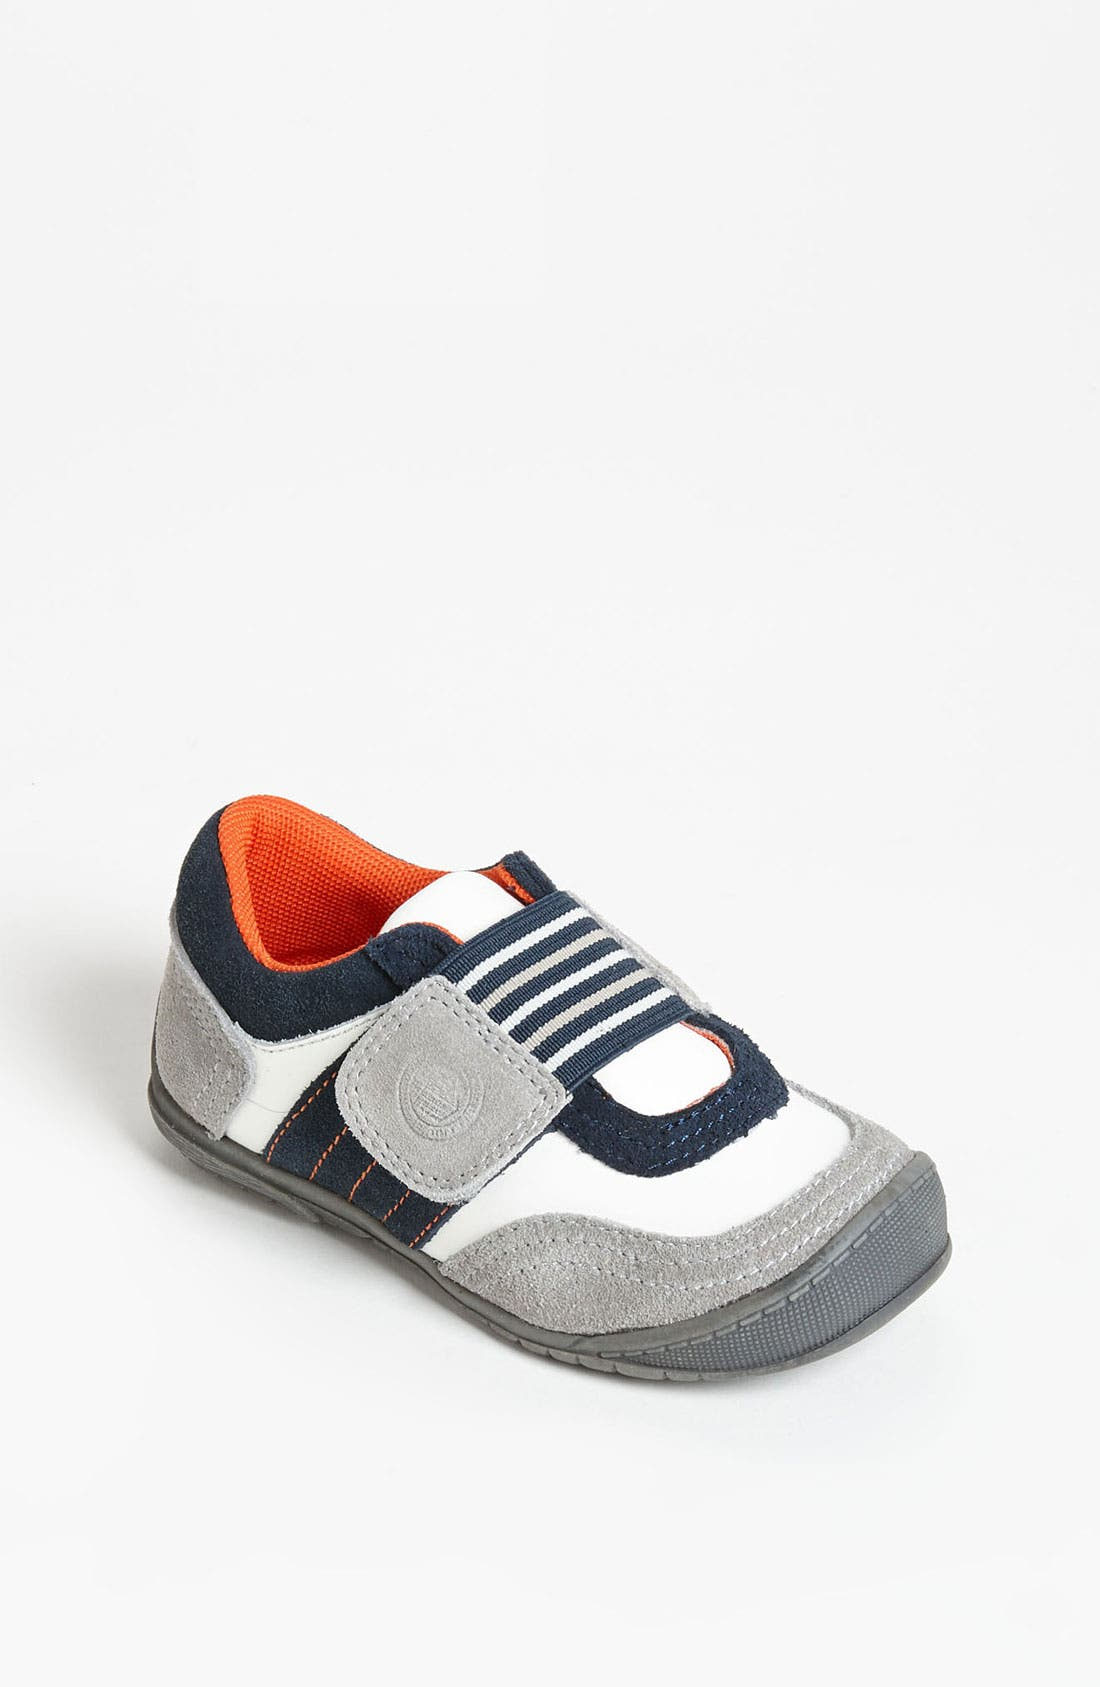 Main Image - Kenneth Cole Reaction 'Bet-Setting 2' Sneaker (Walker & Toddler)